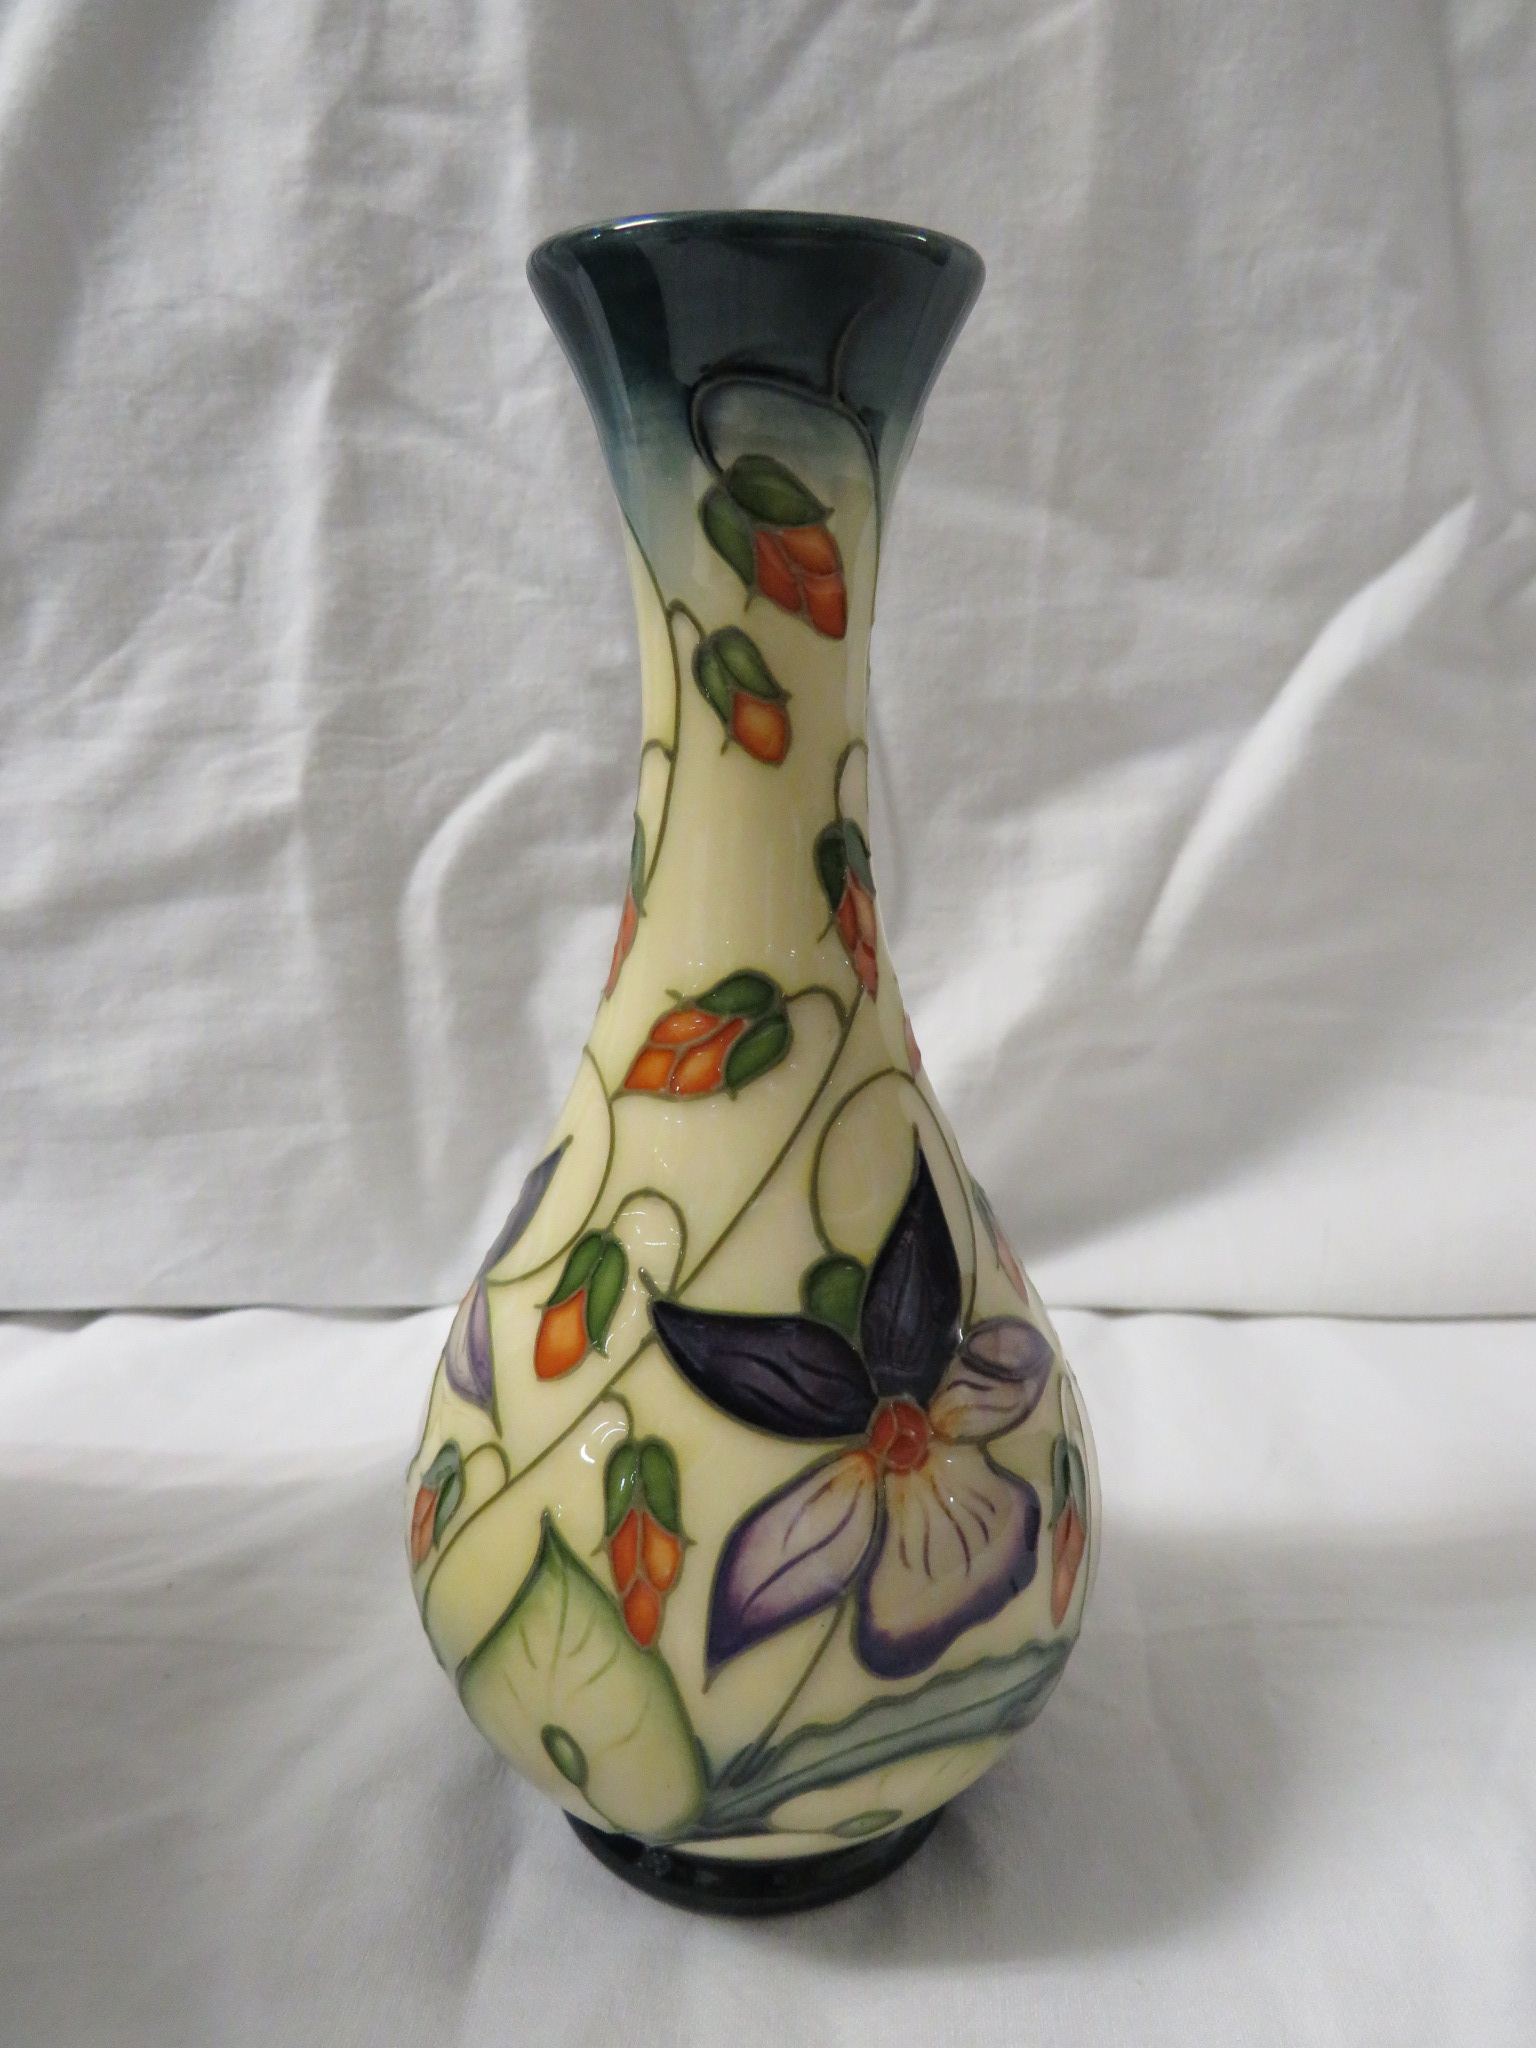 Lot 4 - Moorcroft pottery one star members vase of bottle shape, cream ground, green at neck and foot,